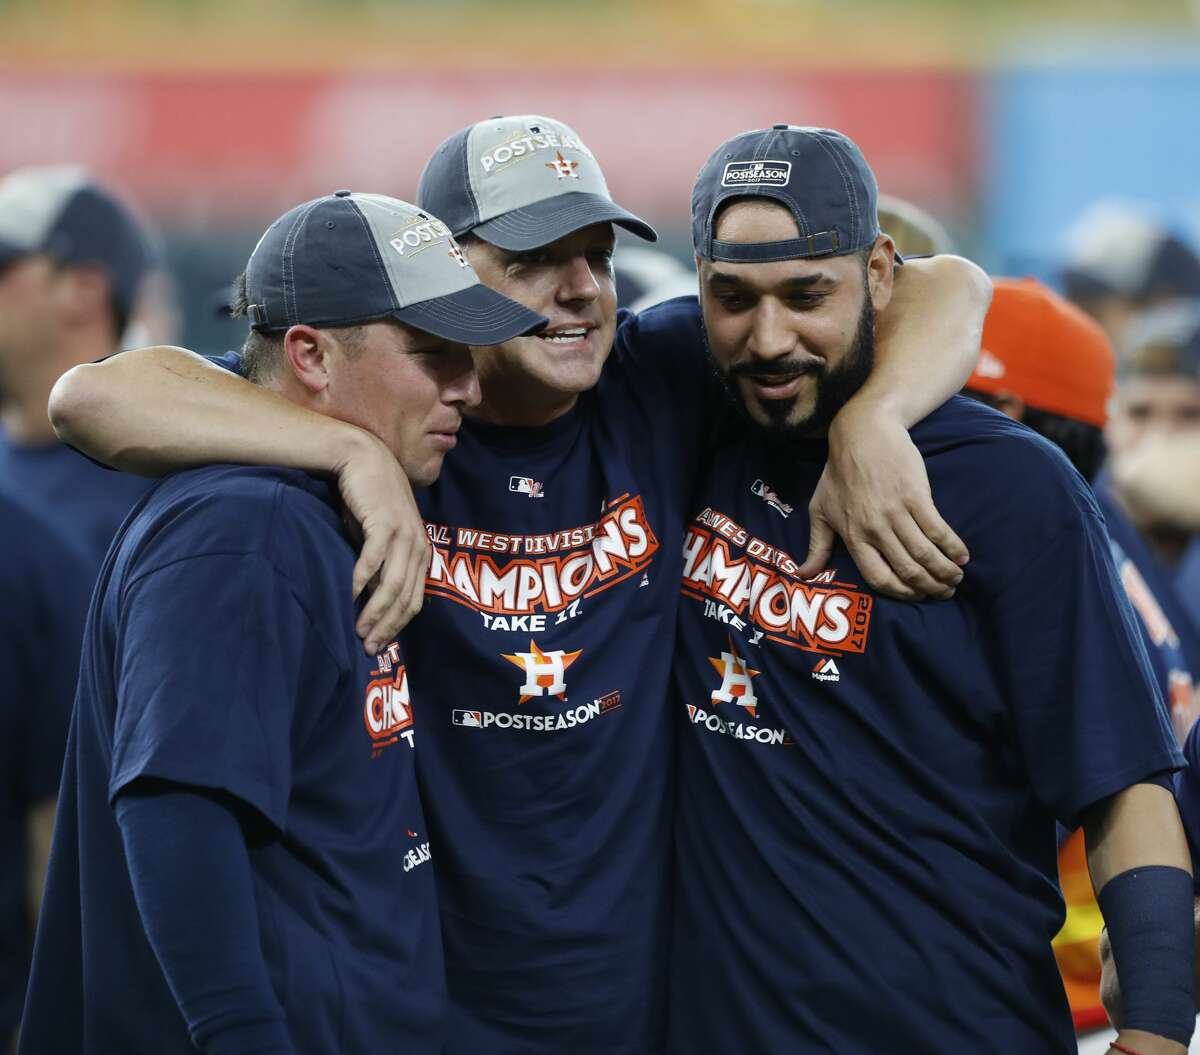 PHOTOS: What the Astros' playoff merchandise looks like Immediately after clinching the American League West division championship, players and coaches - like Alex Bregman, A.J. Hinch and Marwin Gonzalez - donned championship gear. Now, plans can buy that same merchandise. Browse through the photos above for a look at the Astros' playoff merchandise that's for sale.